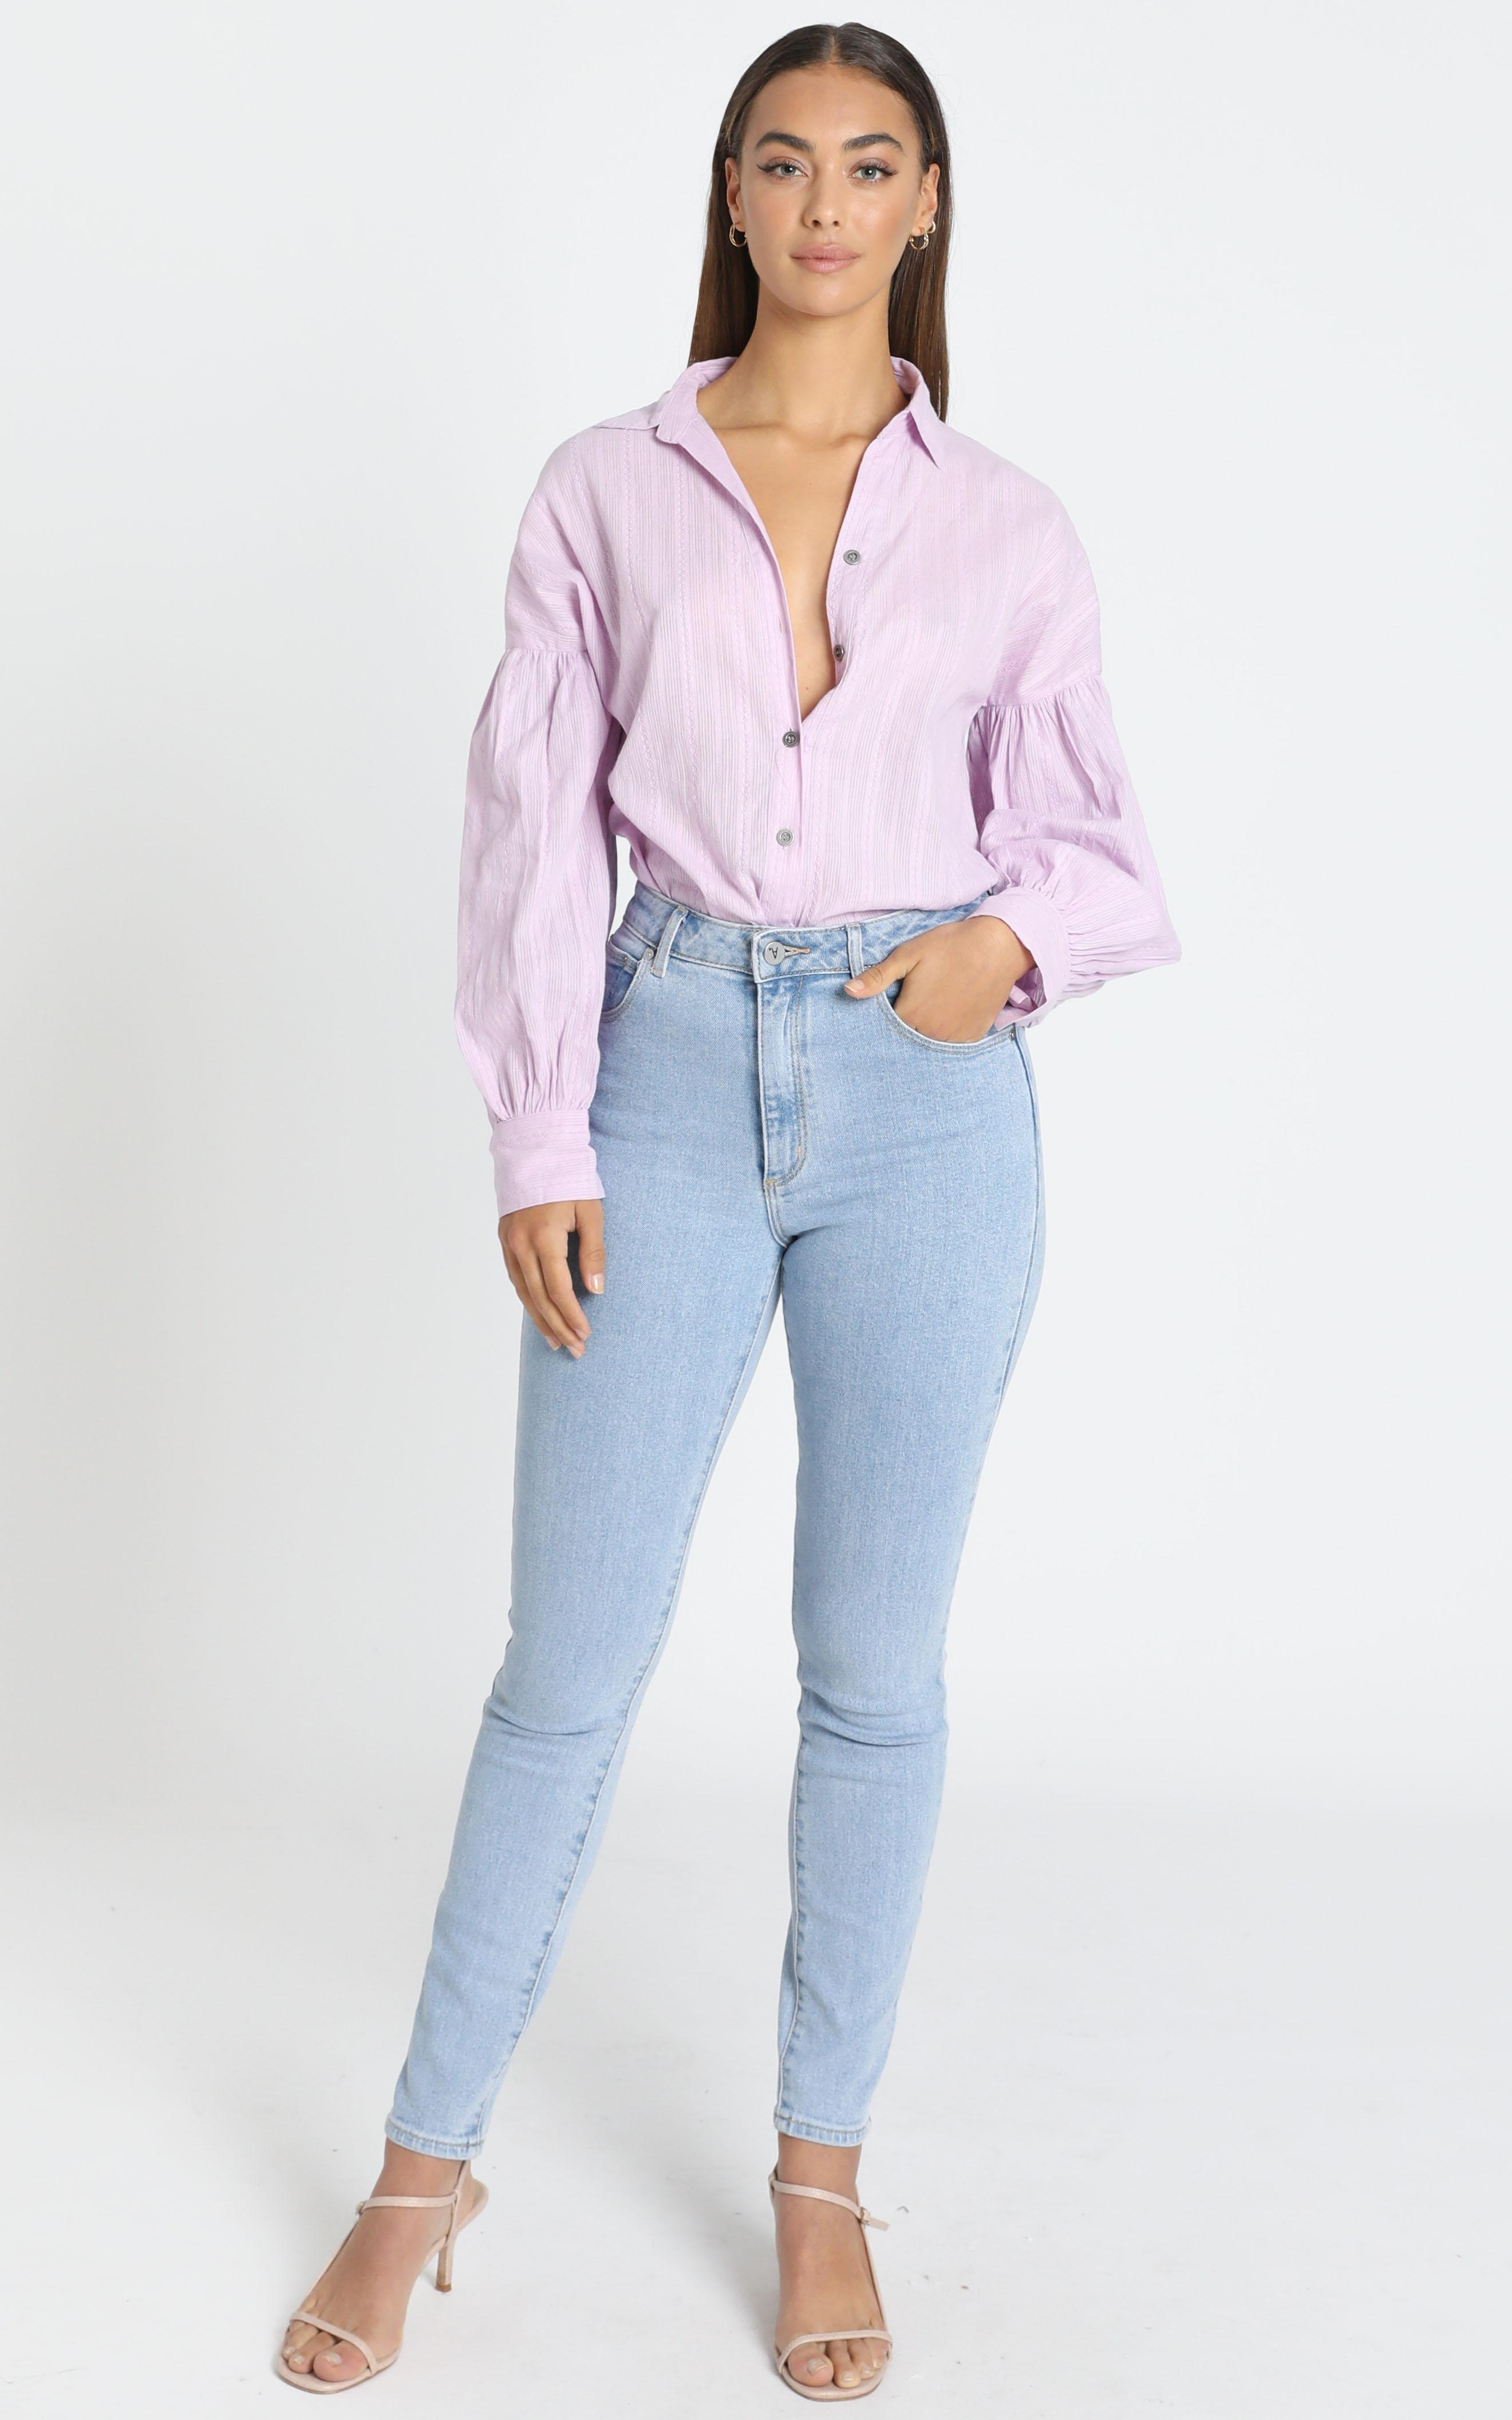 Lennon Shirt in Lilac - 6 (XS), Purple, hi-res image number null